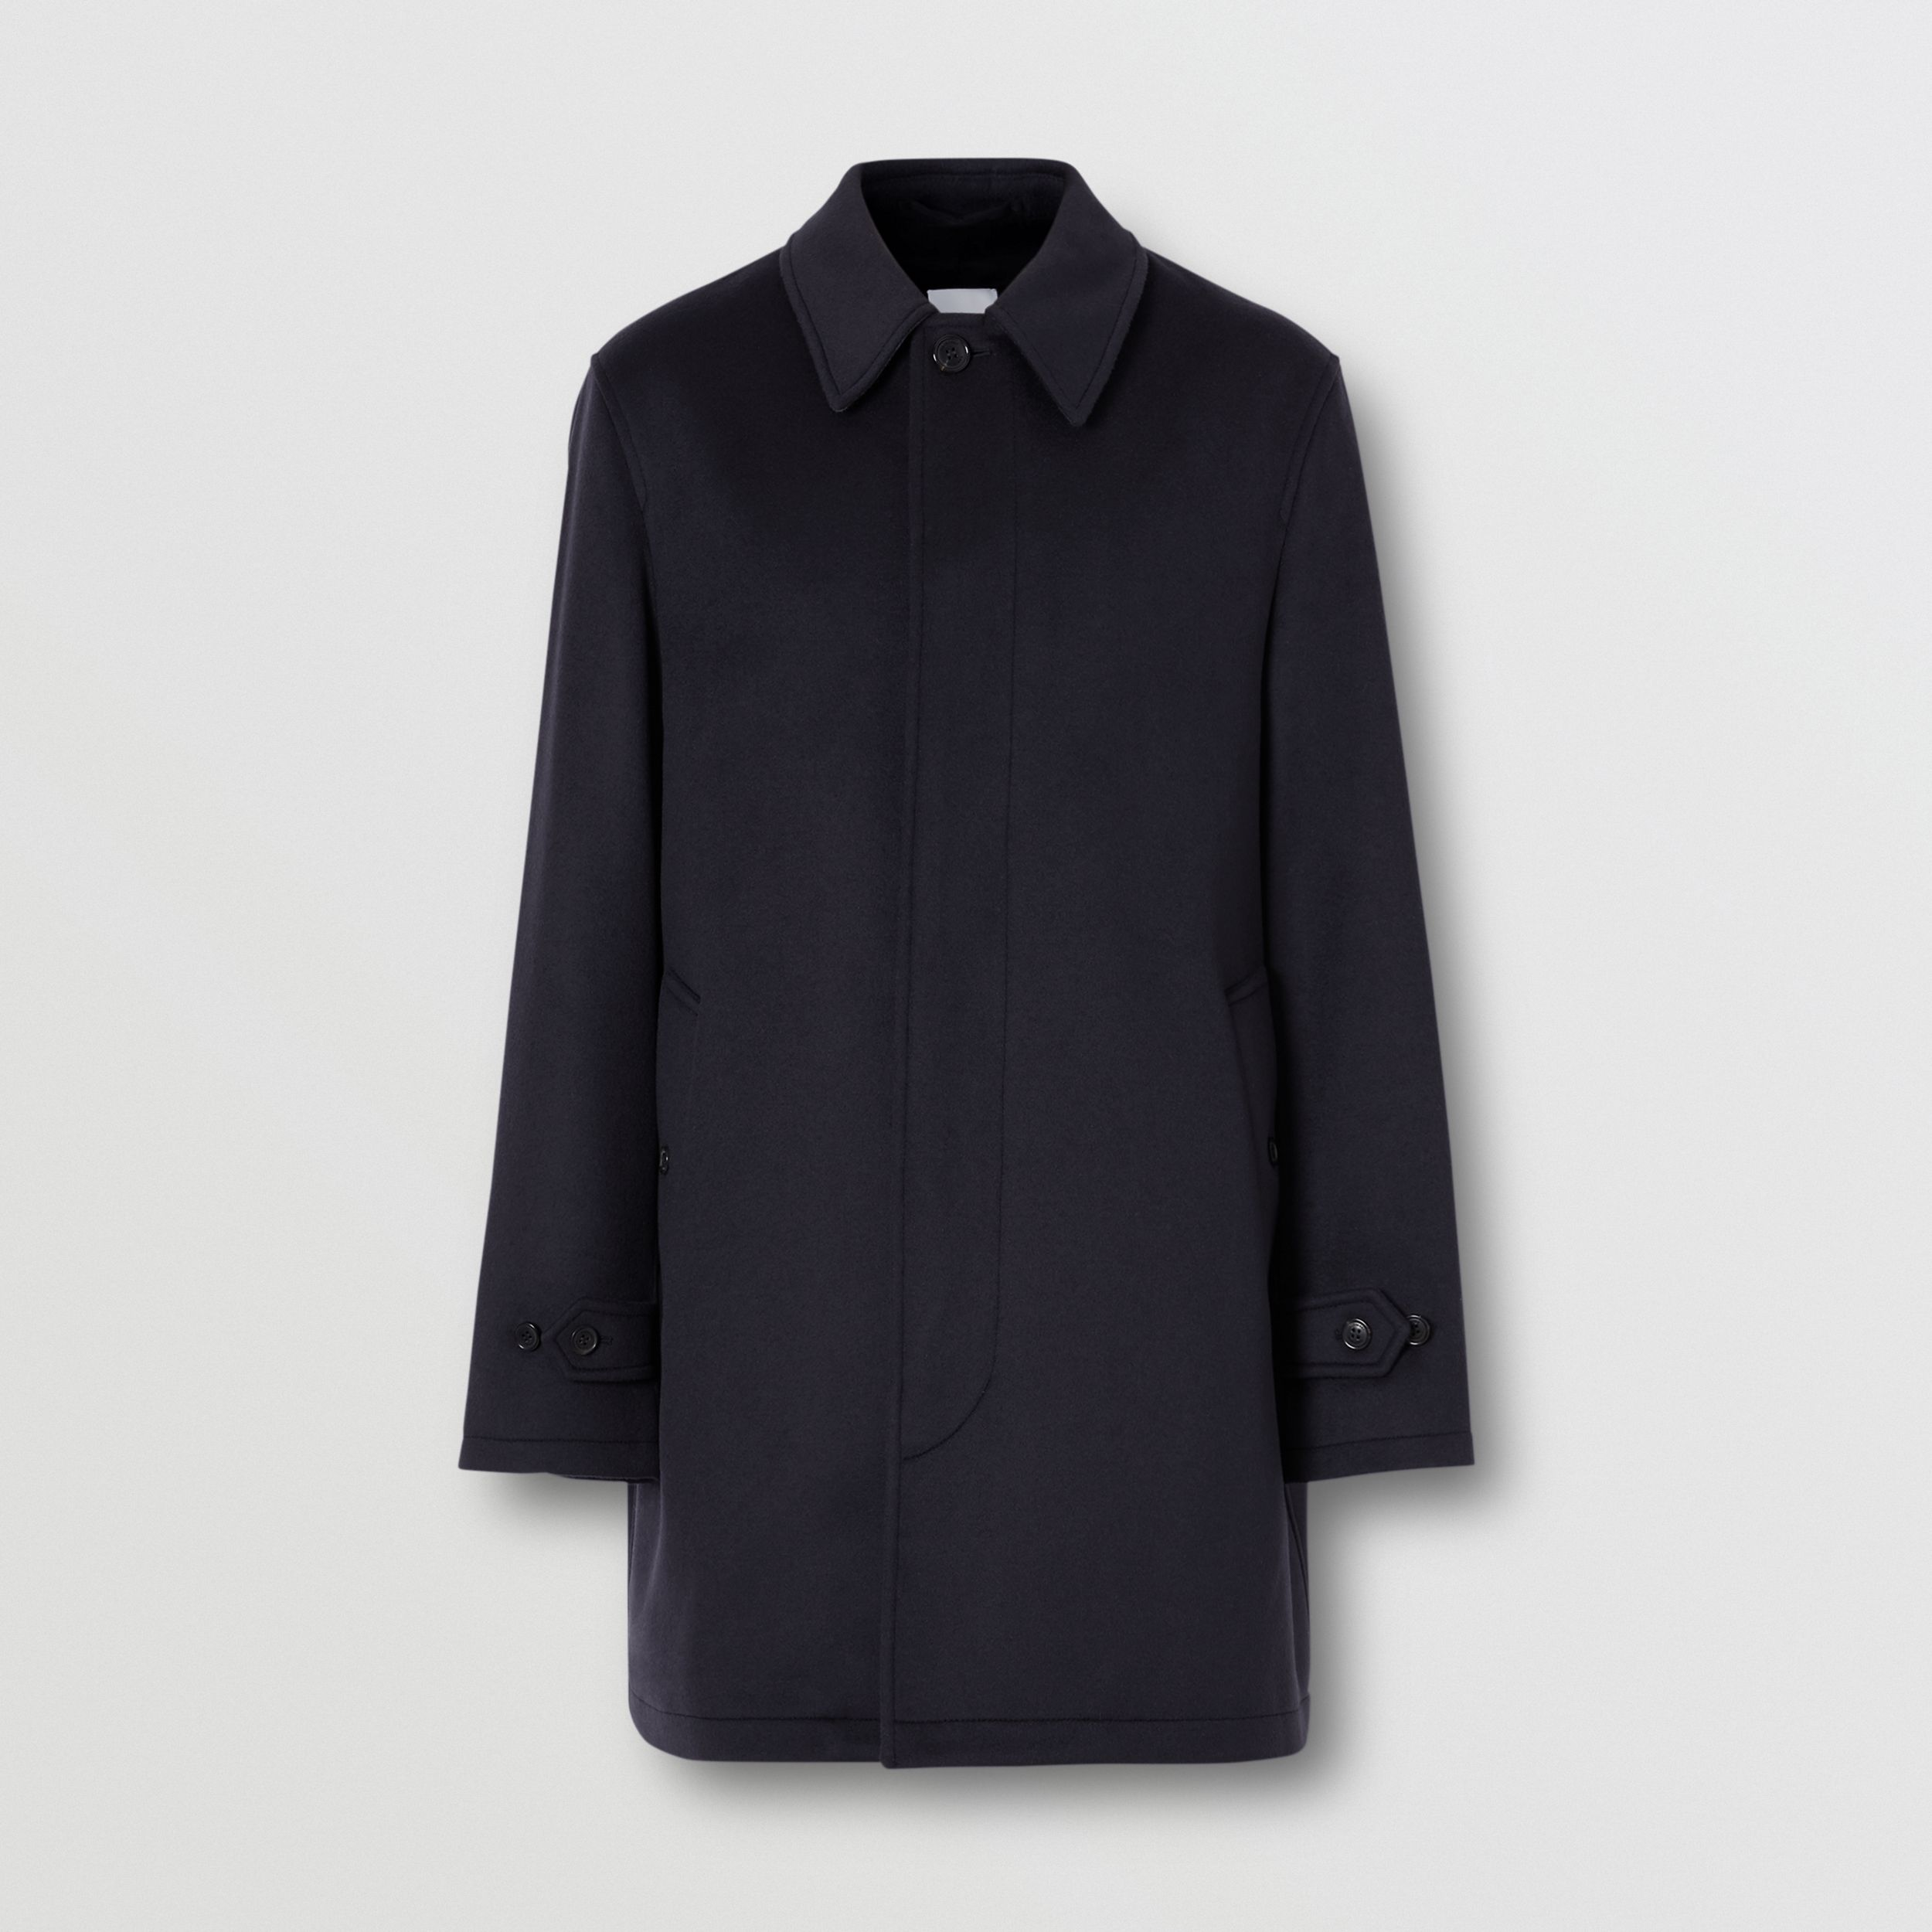 Wool Cashmere Car Coat in Navy - Men | Burberry United Kingdom - 4